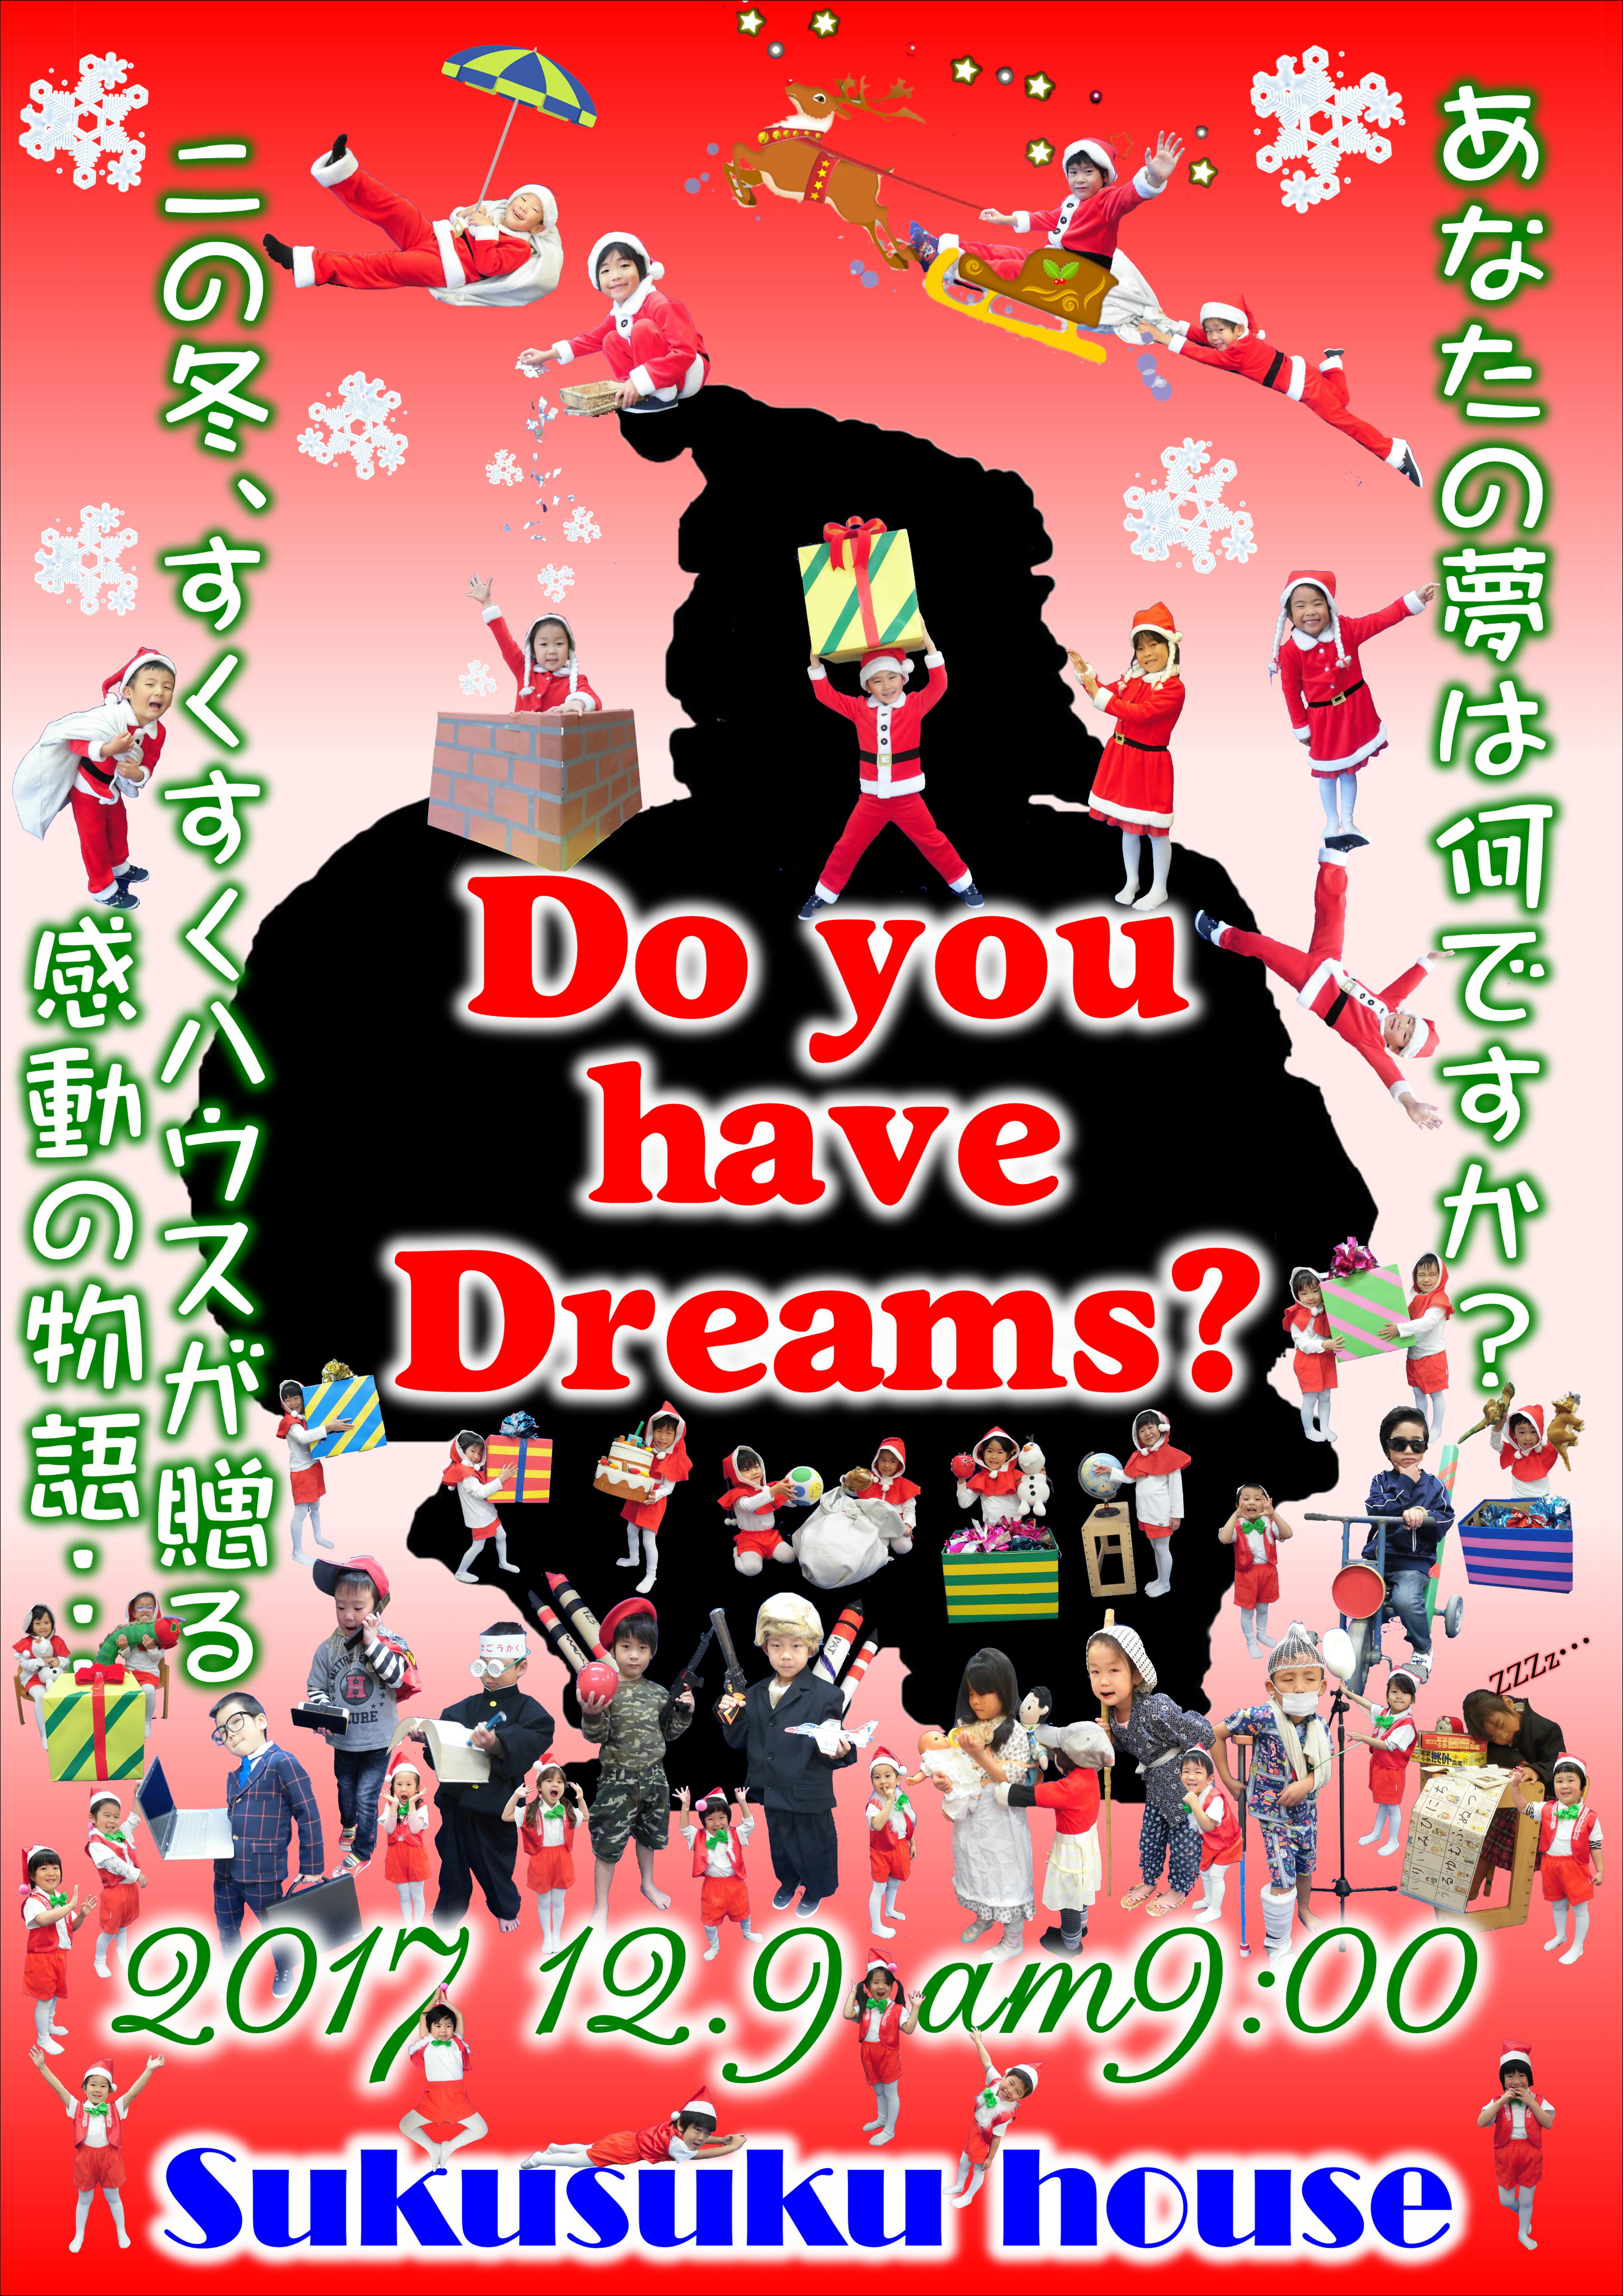 do you have dreams 3歳以上児発表会 常石保育所 すくすくハウス